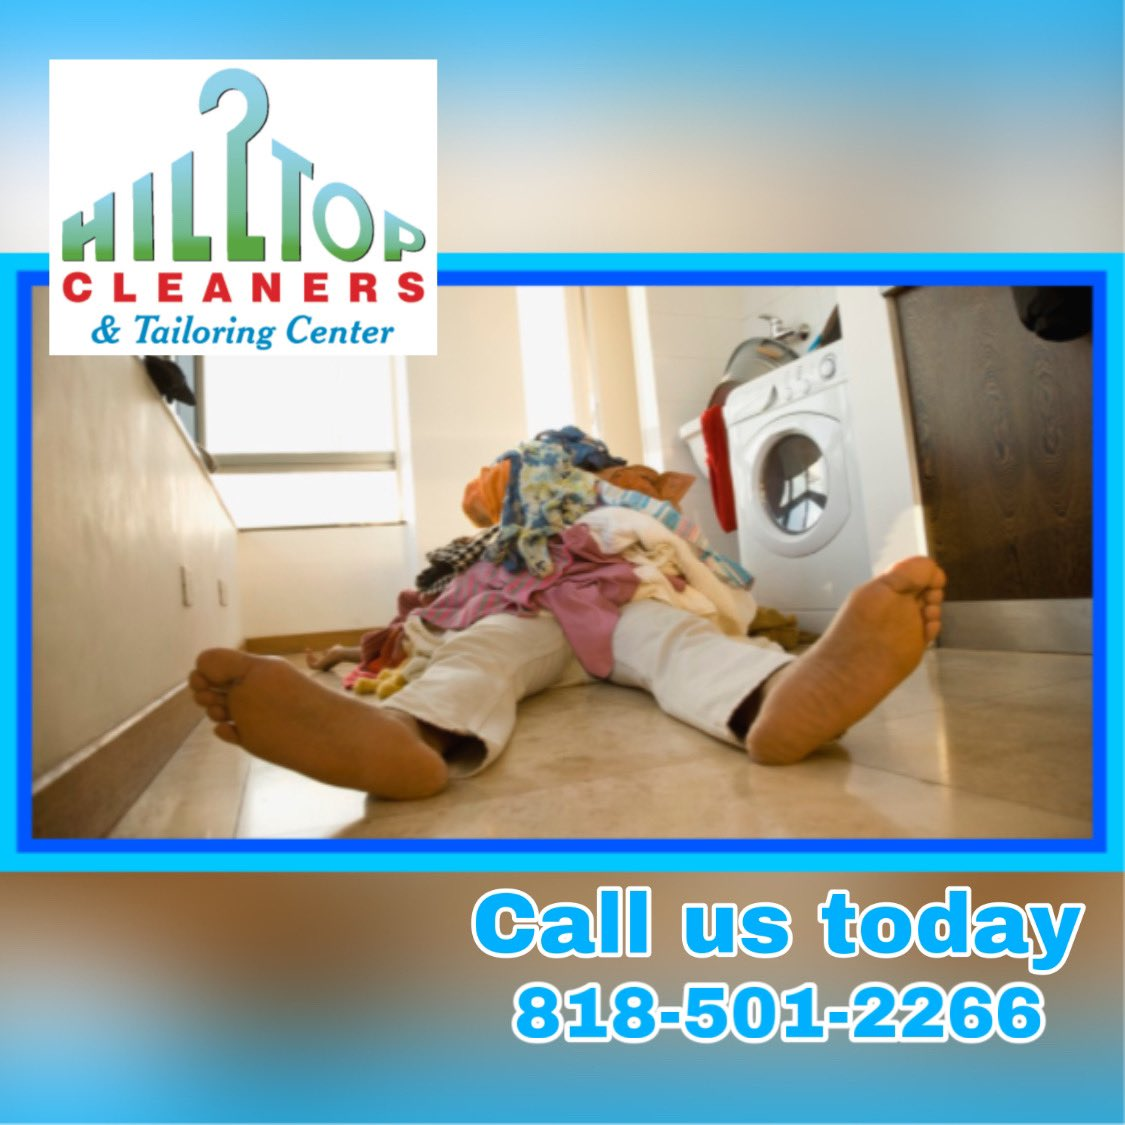 Is #quarantine #laundry taking over ur life?  Not to worry #HilltopCleaners is open for business from 7am-7pm, 7 days a week to take care of ur #drycleaning needs. Come on in or call to setup a #freepickupanddelivery 818-501-2266. #encino #quarantinelife #quarantineandchill pic.twitter.com/XXQKcLJok1